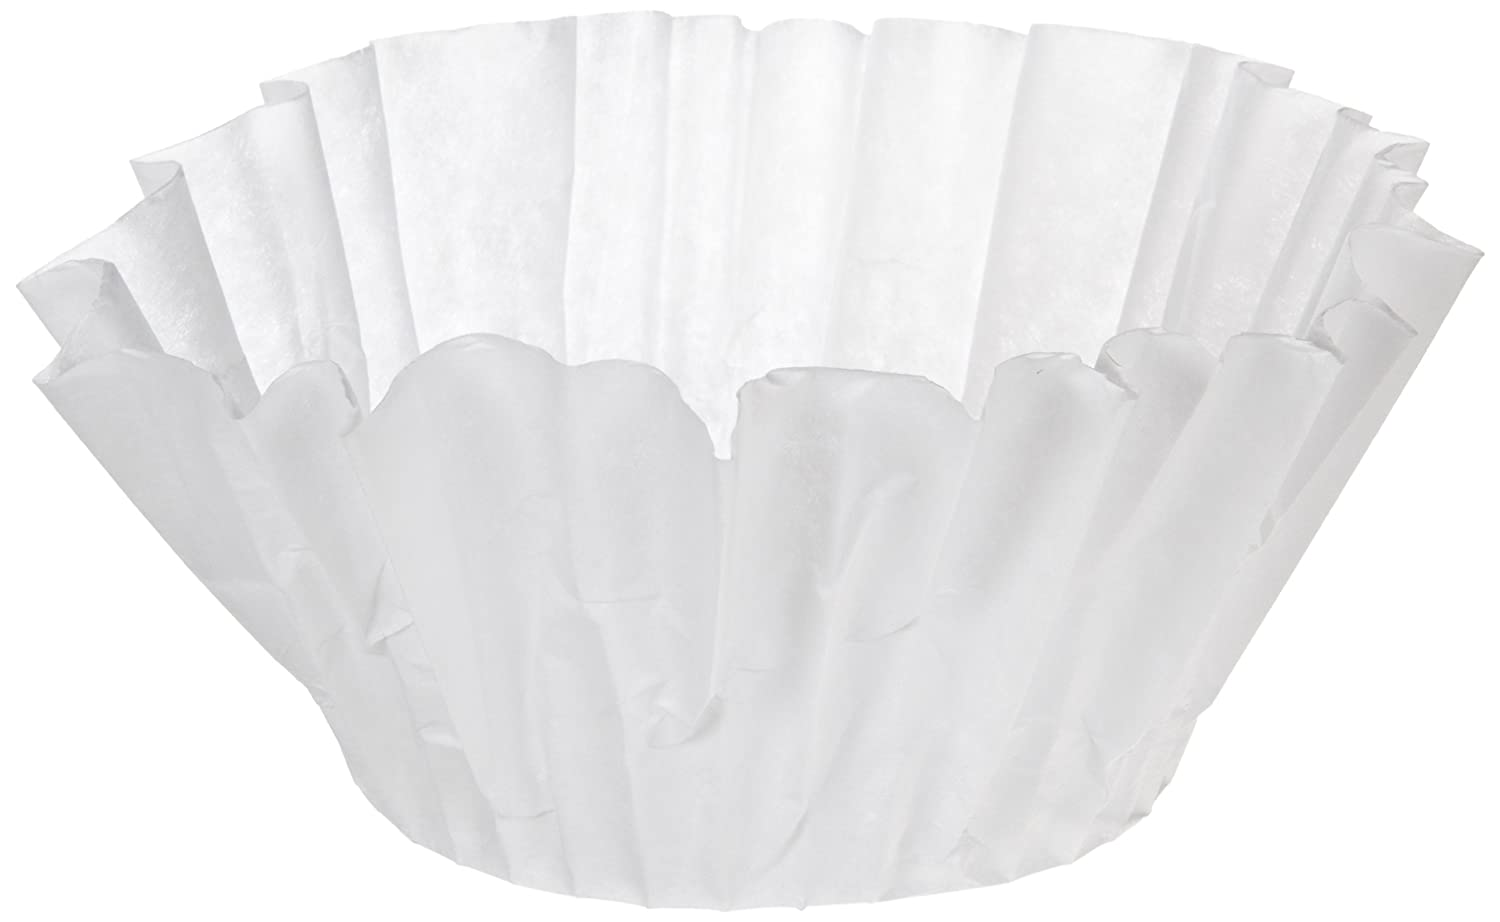 Bunn 20100 12-3/4 Inch by 5-1/4 Inch, Bodegradable, Coffee and Tea Paper Filter (Case of 500)